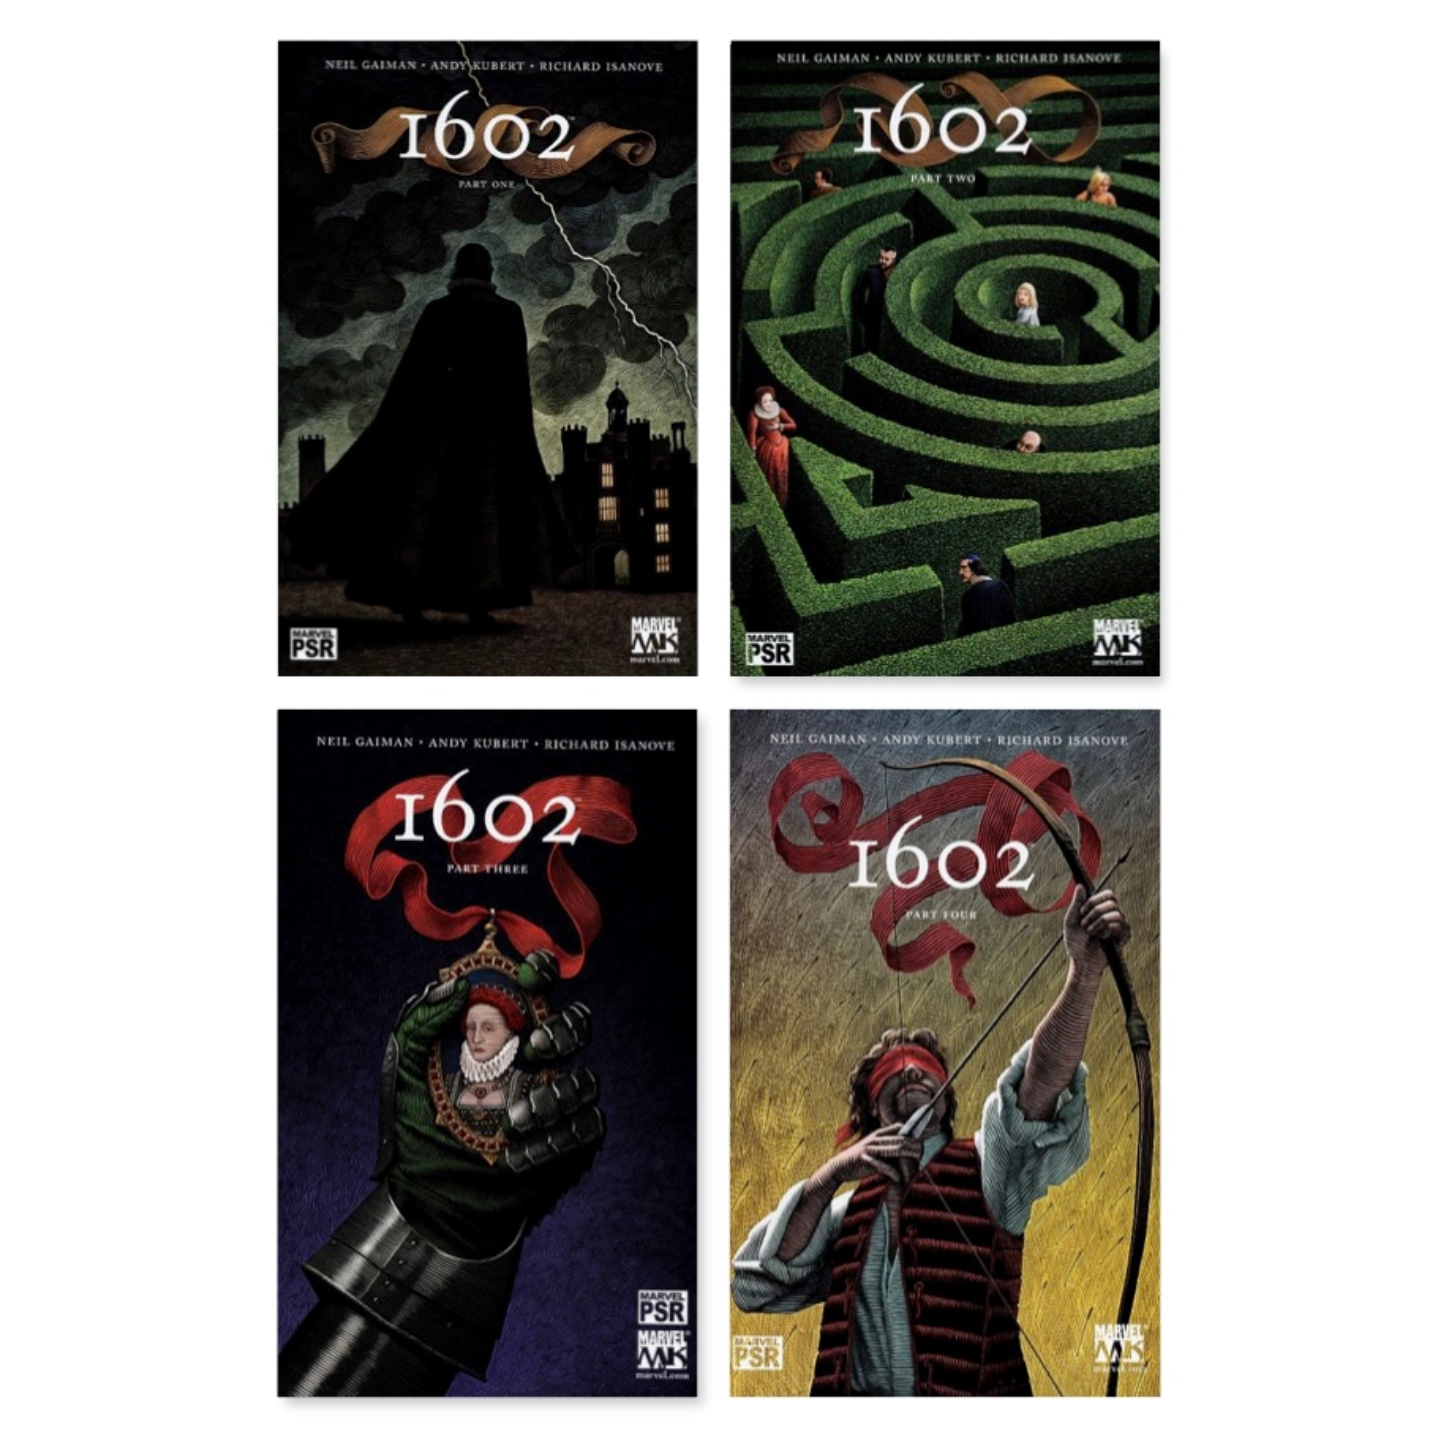 MARVEL 1602 #1 - #8 COMPLETE SET RUN